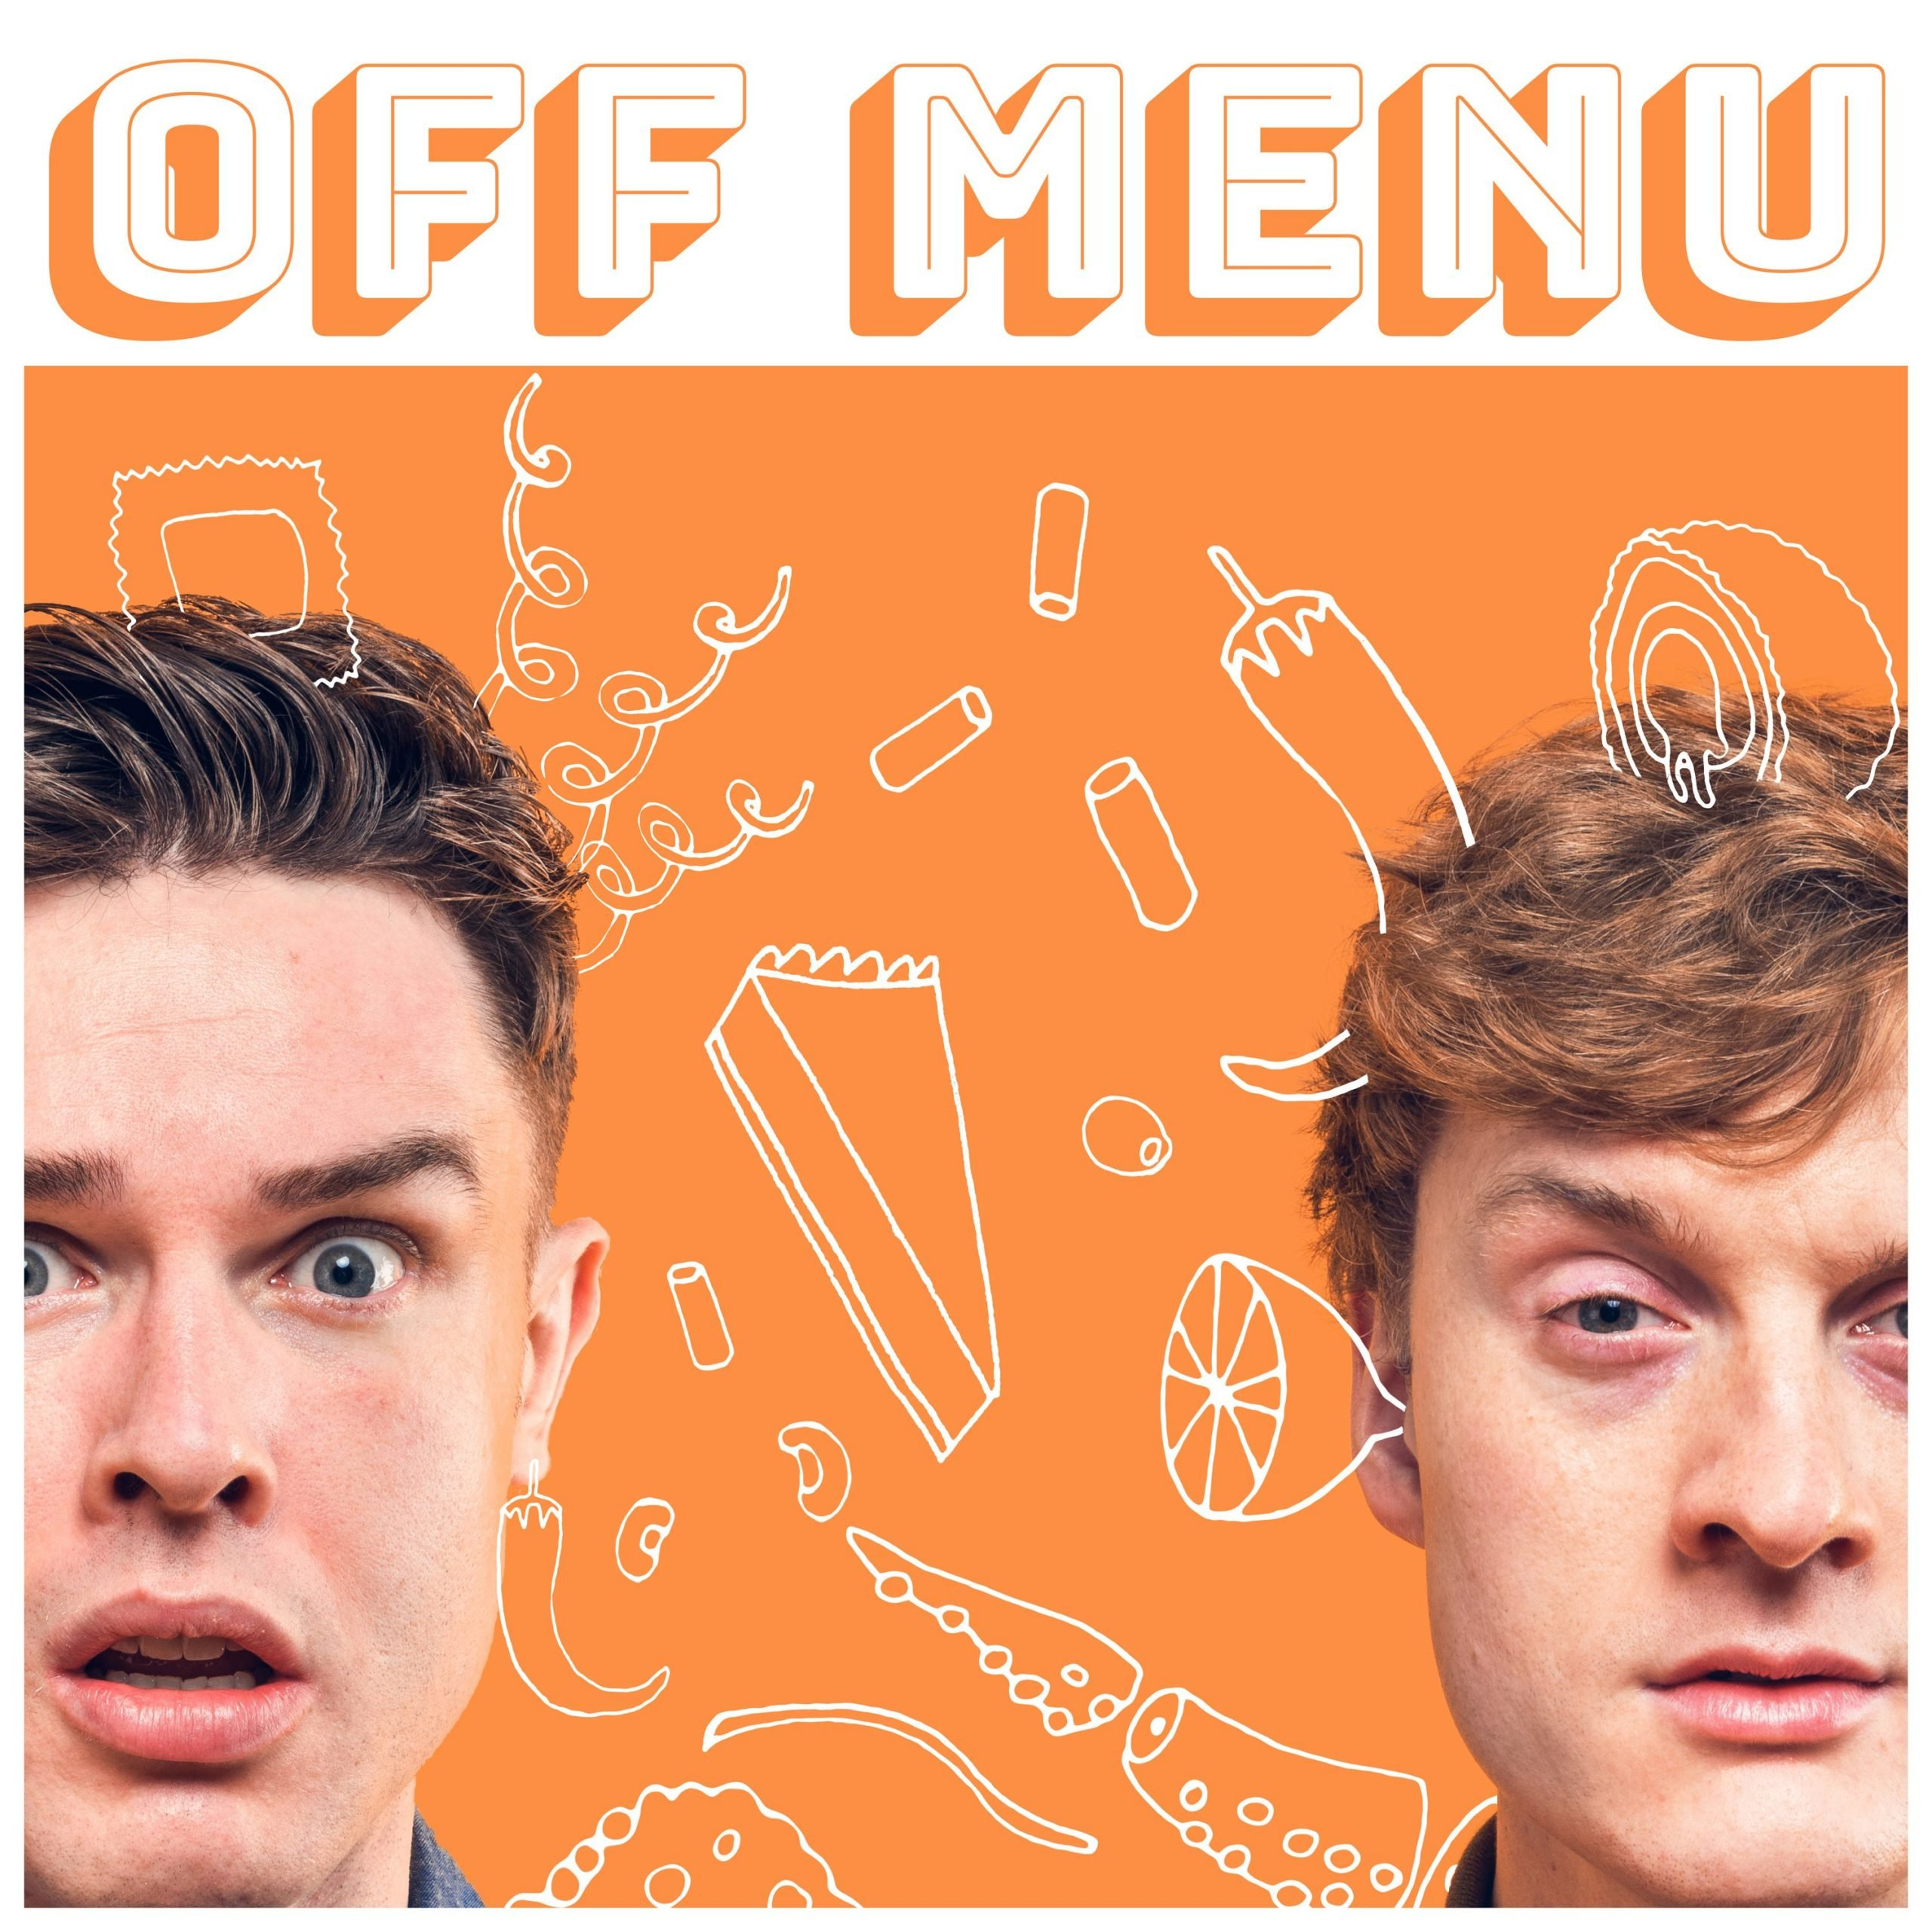 Two mens heads on a orange background